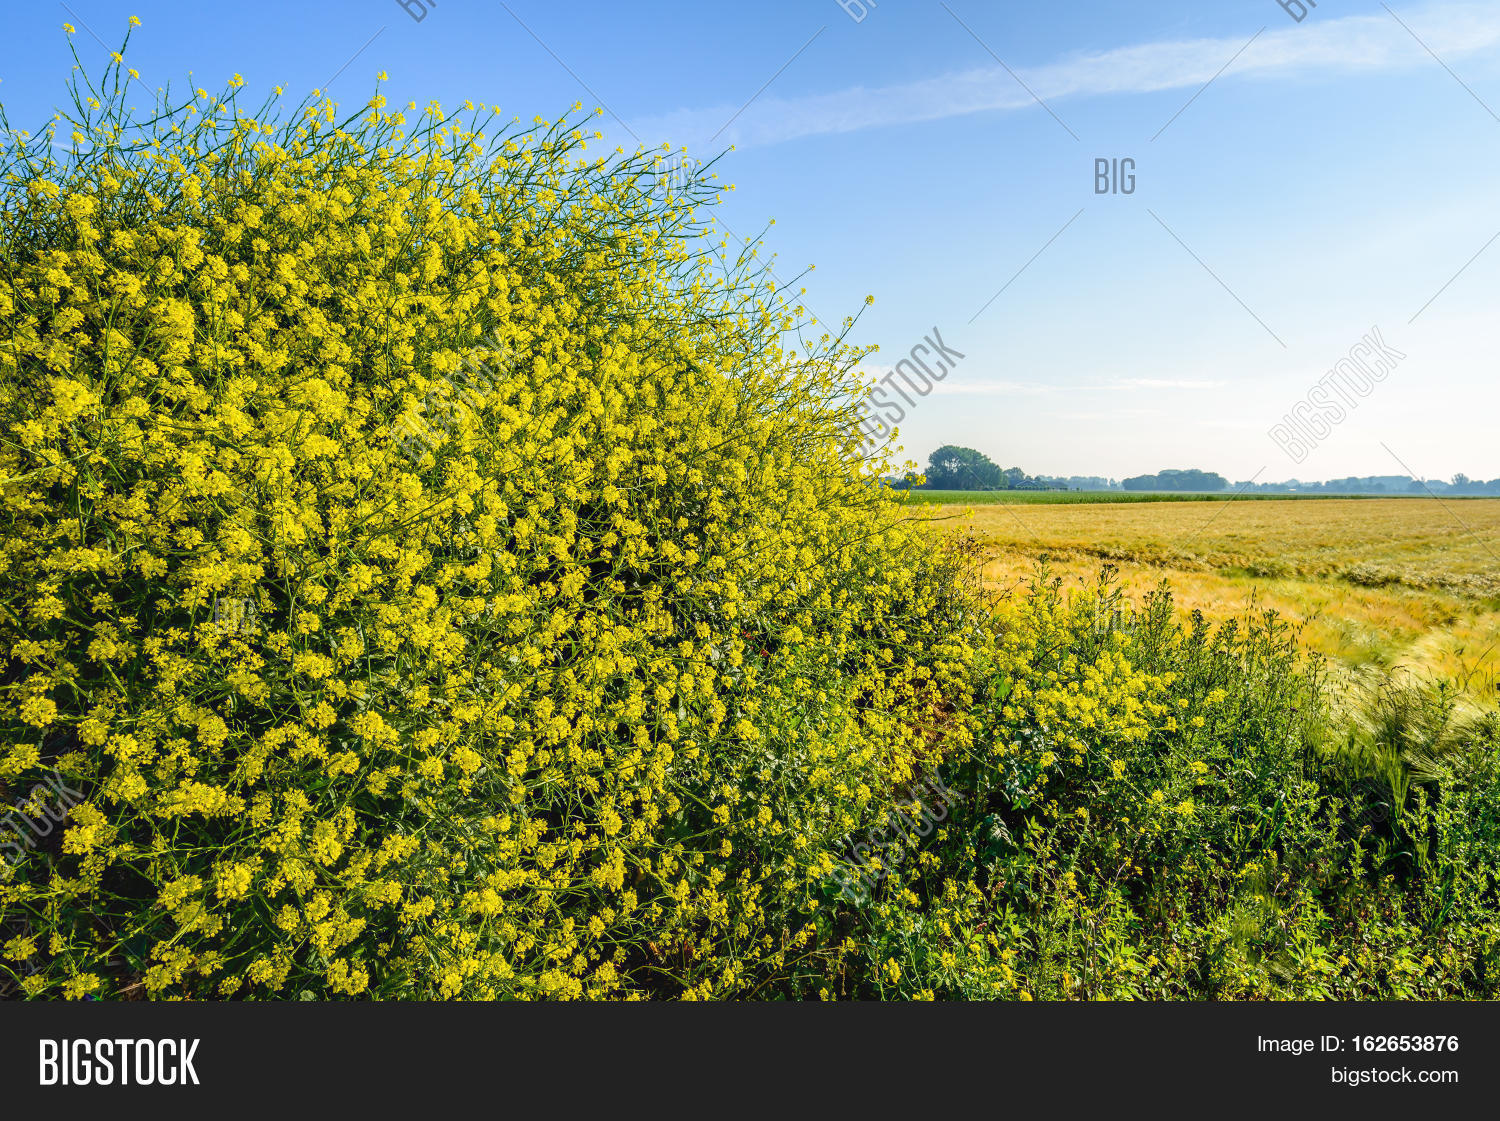 Closeup Yellow Blossoming Black Image & Photo | Bigstock